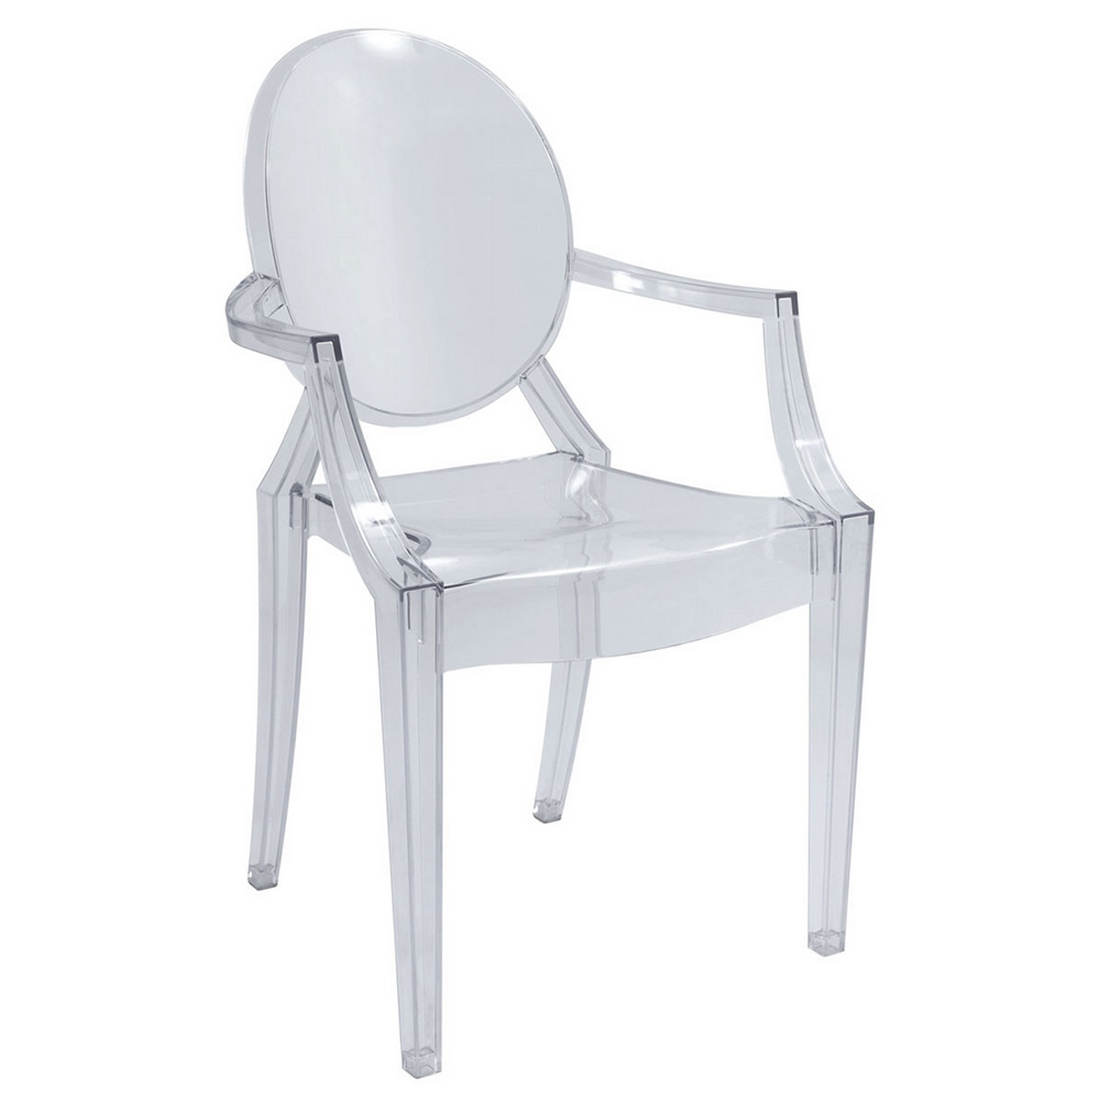 Louis ghost chair by kartell the classic reinvented by for Silla transparente